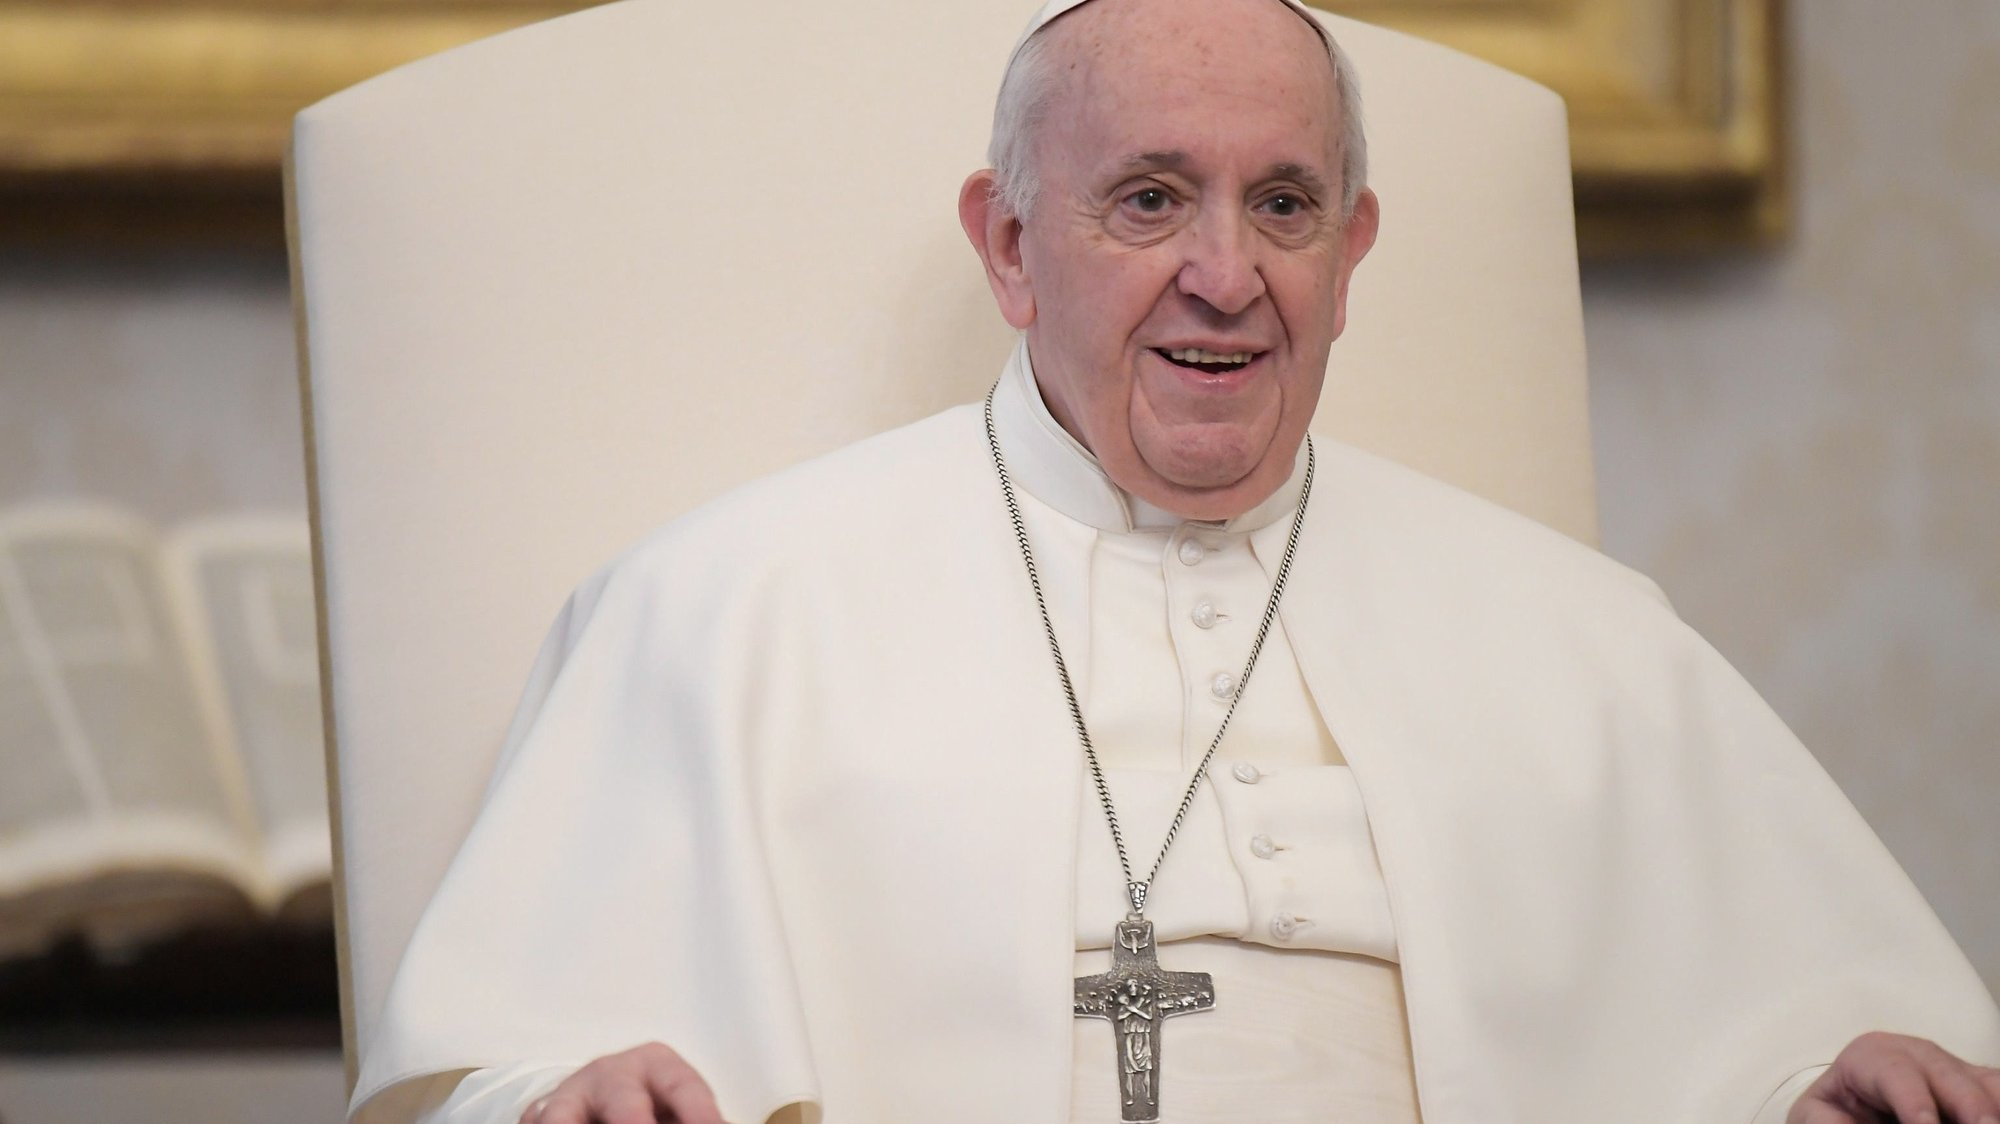 epa08983698 A handout photo made available by the Vatican Media shows Pope Francis during his weekly general audience in Vatican City, 03 February 2021.  EPA/VATICAN MEDIA / HANDOUT  HANDOUT EDITORIAL USE ONLY/NO SALES